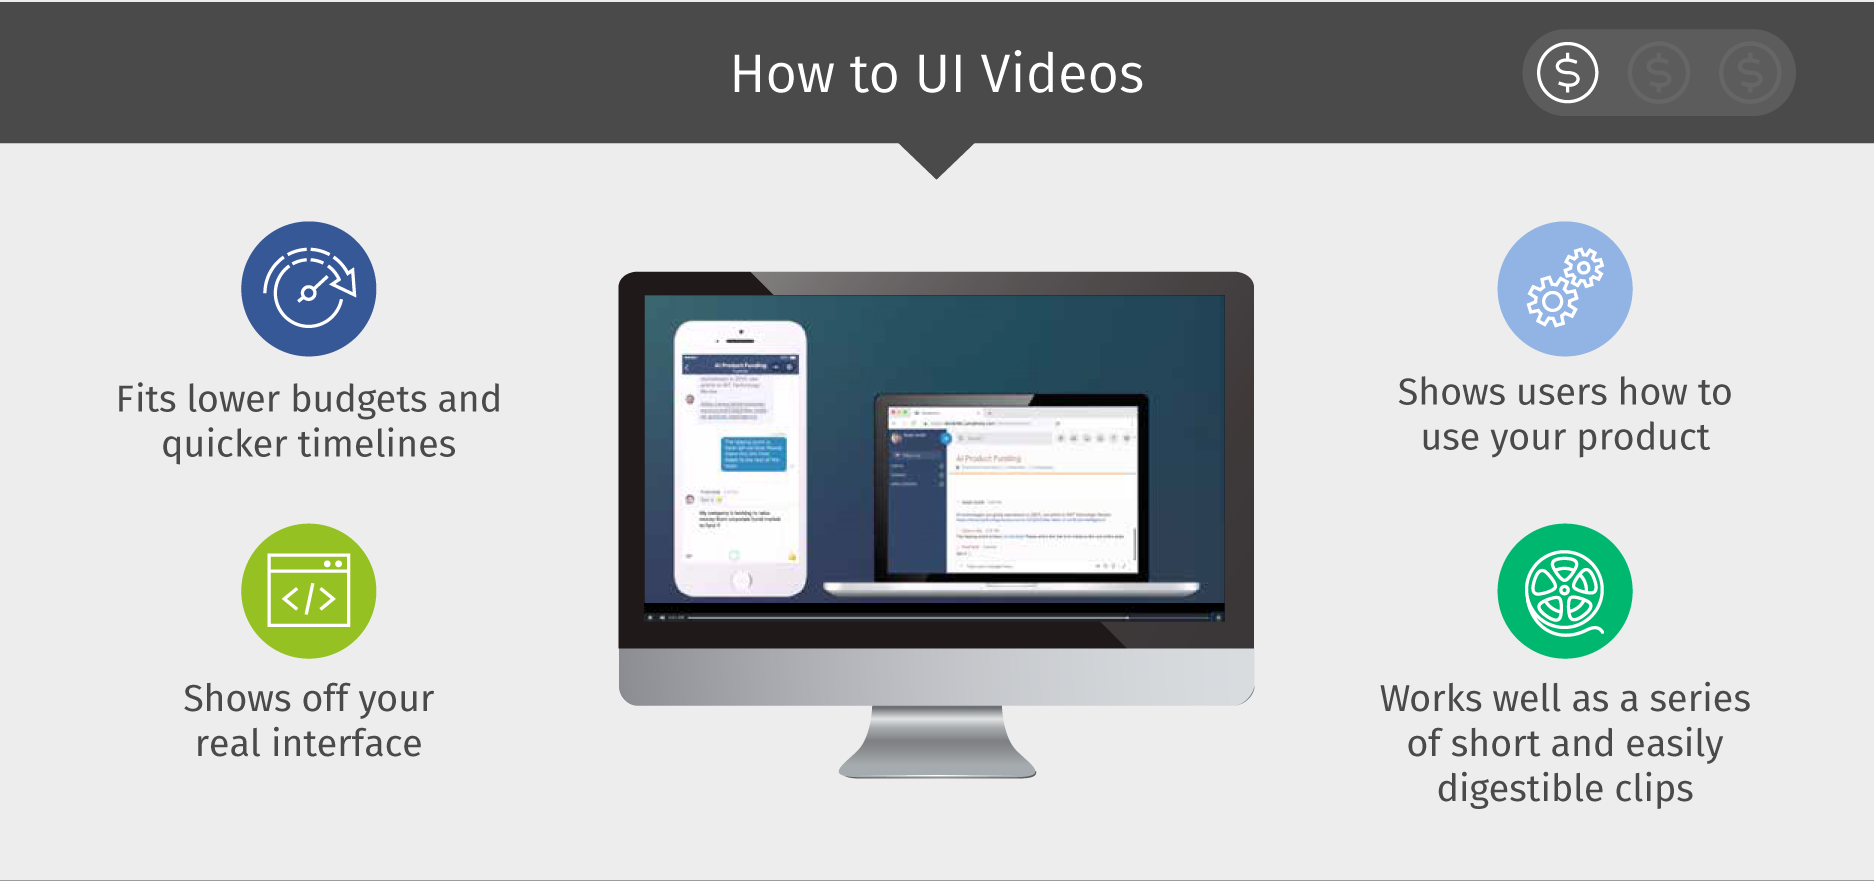 How to UI Videos